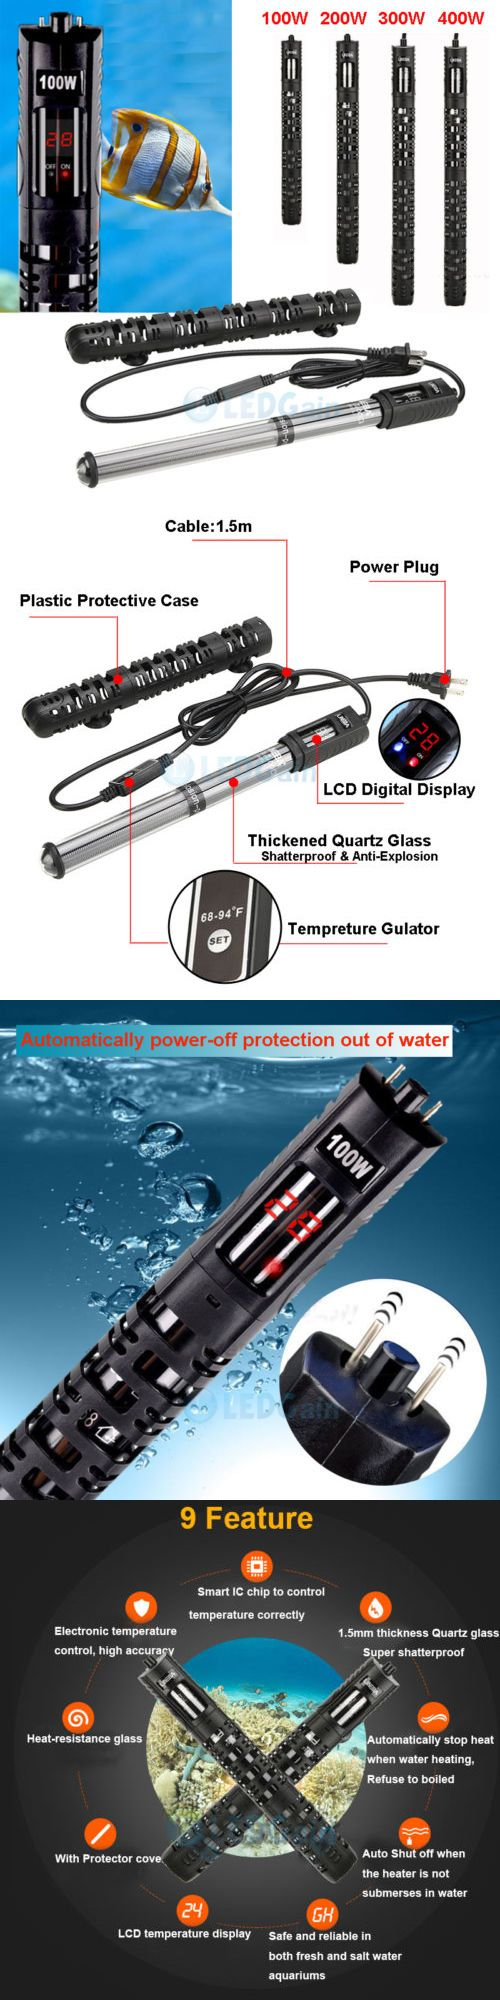 Heaters and Chillers 177799: 100W-400W Aquarium Heater Anti-Explosion Submersible Fish Tank Water Adjustable BUY IT NOW ONLY: $40.99